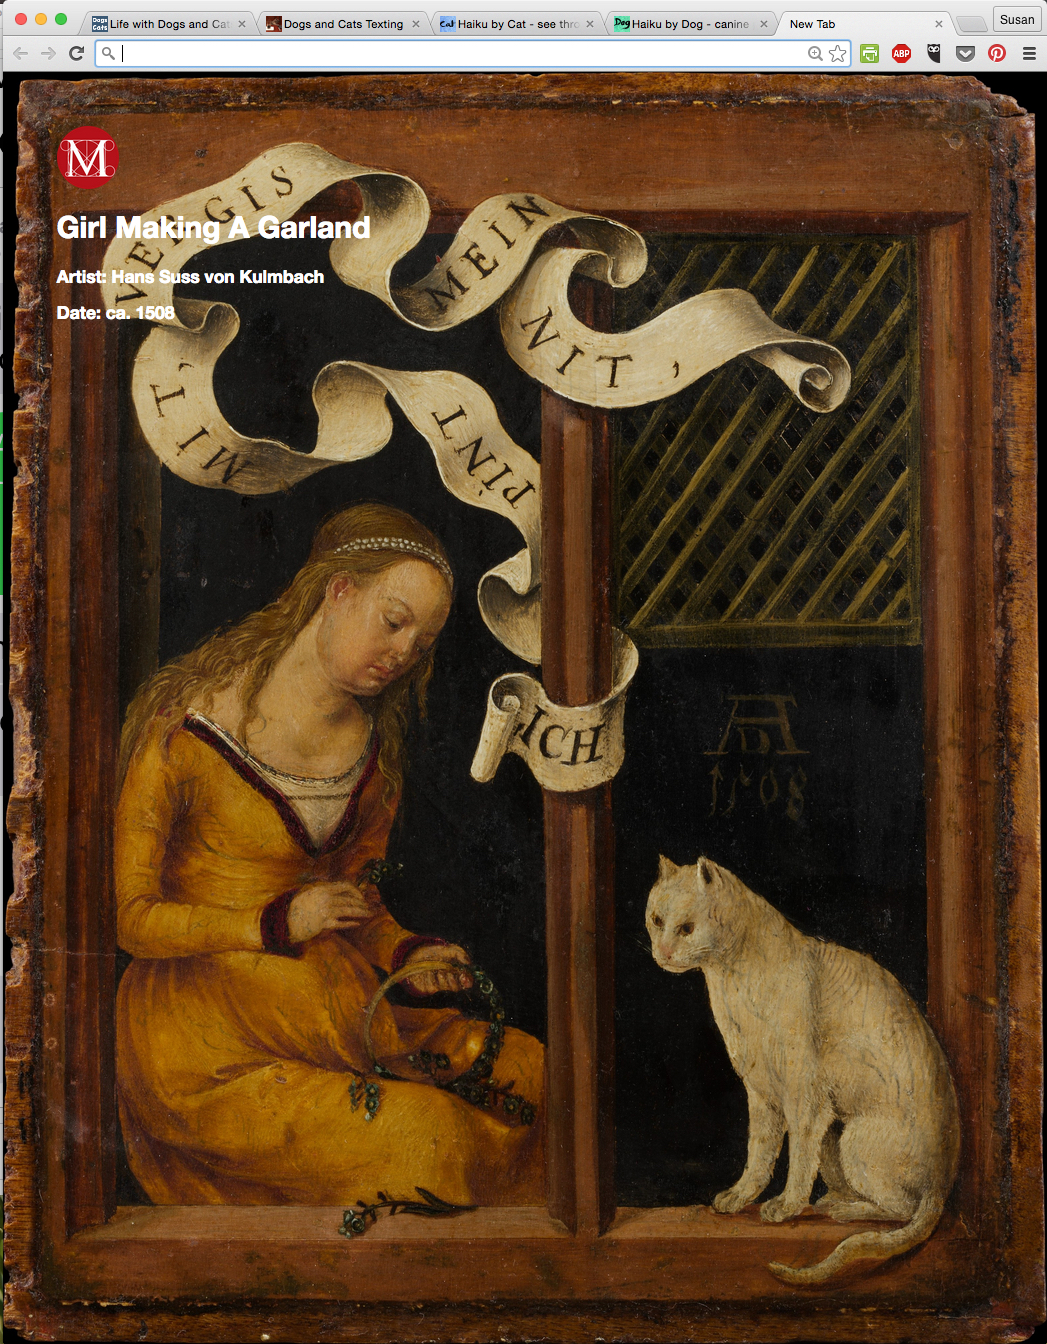 Girl Making a Garland by Hans Suss von Kulmbach from Meow Met Chrome Extension.